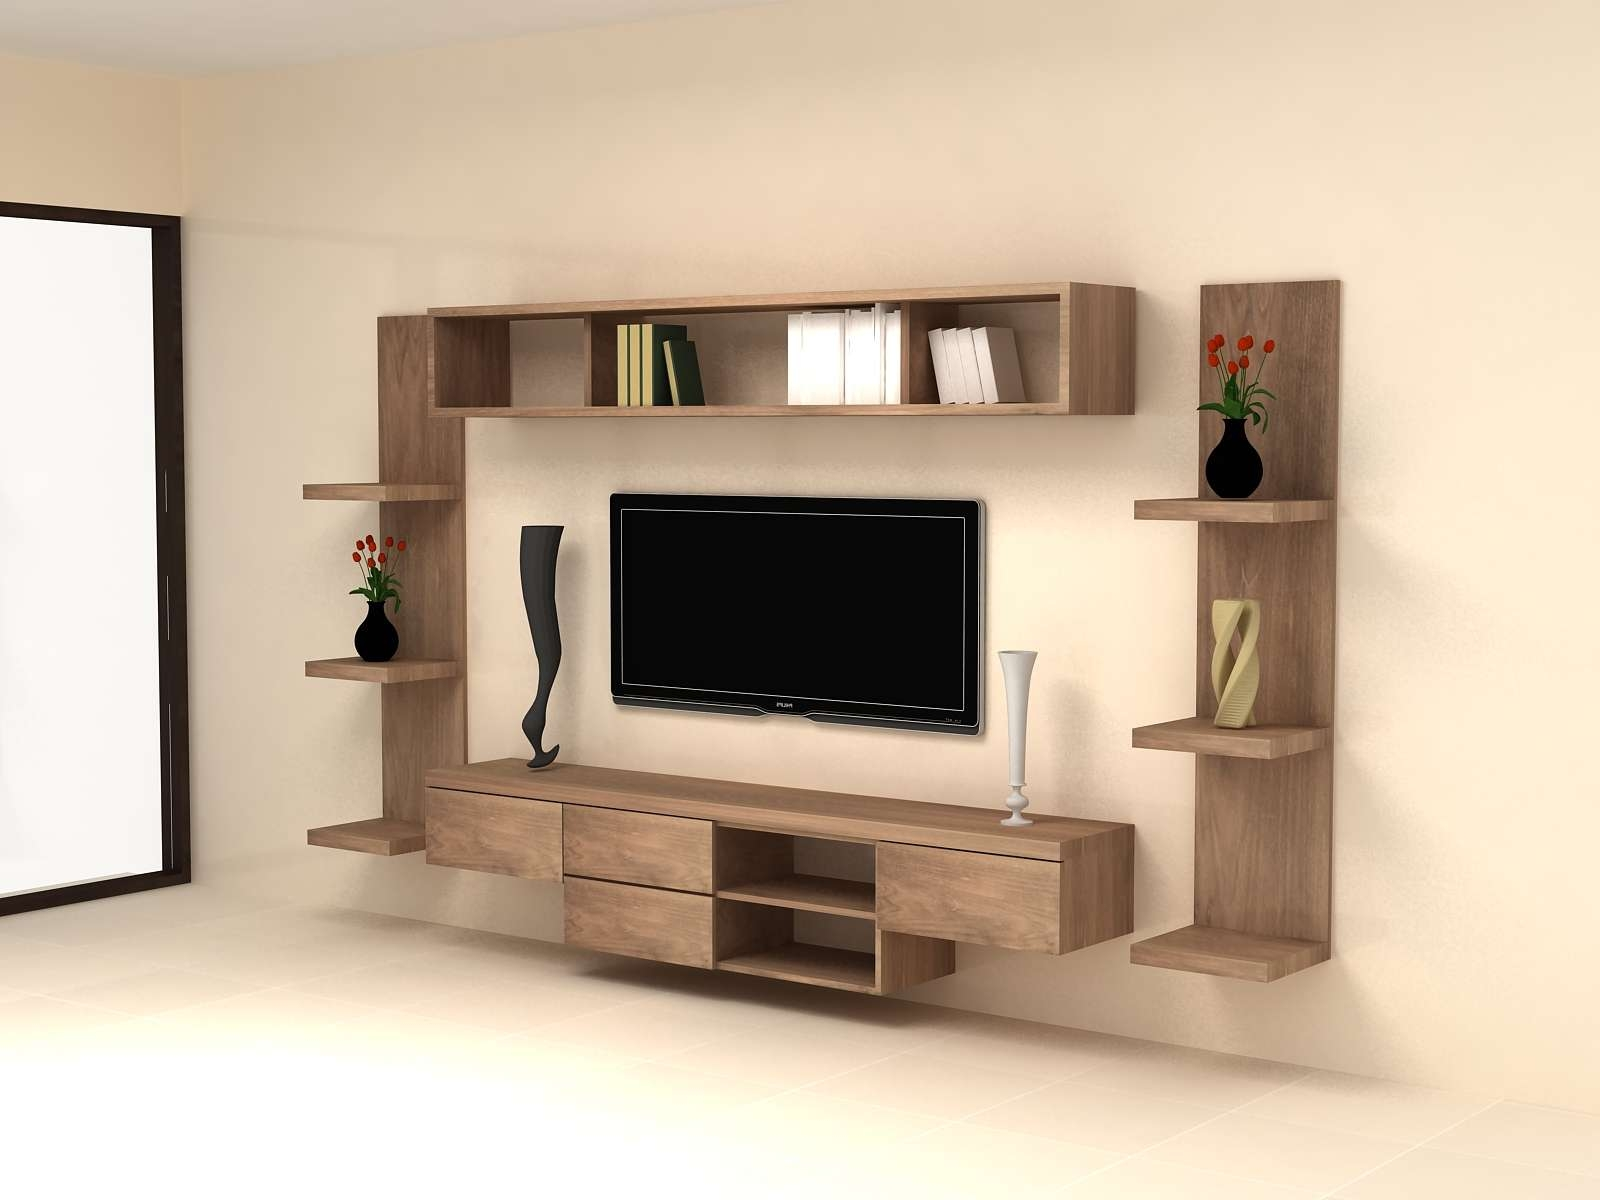 Bedroom : Tv Wall Unit Designs Tv Stand Unit Thin Tv Stand Wall Regarding Contemporary Tv Cabinets (View 19 of 20)